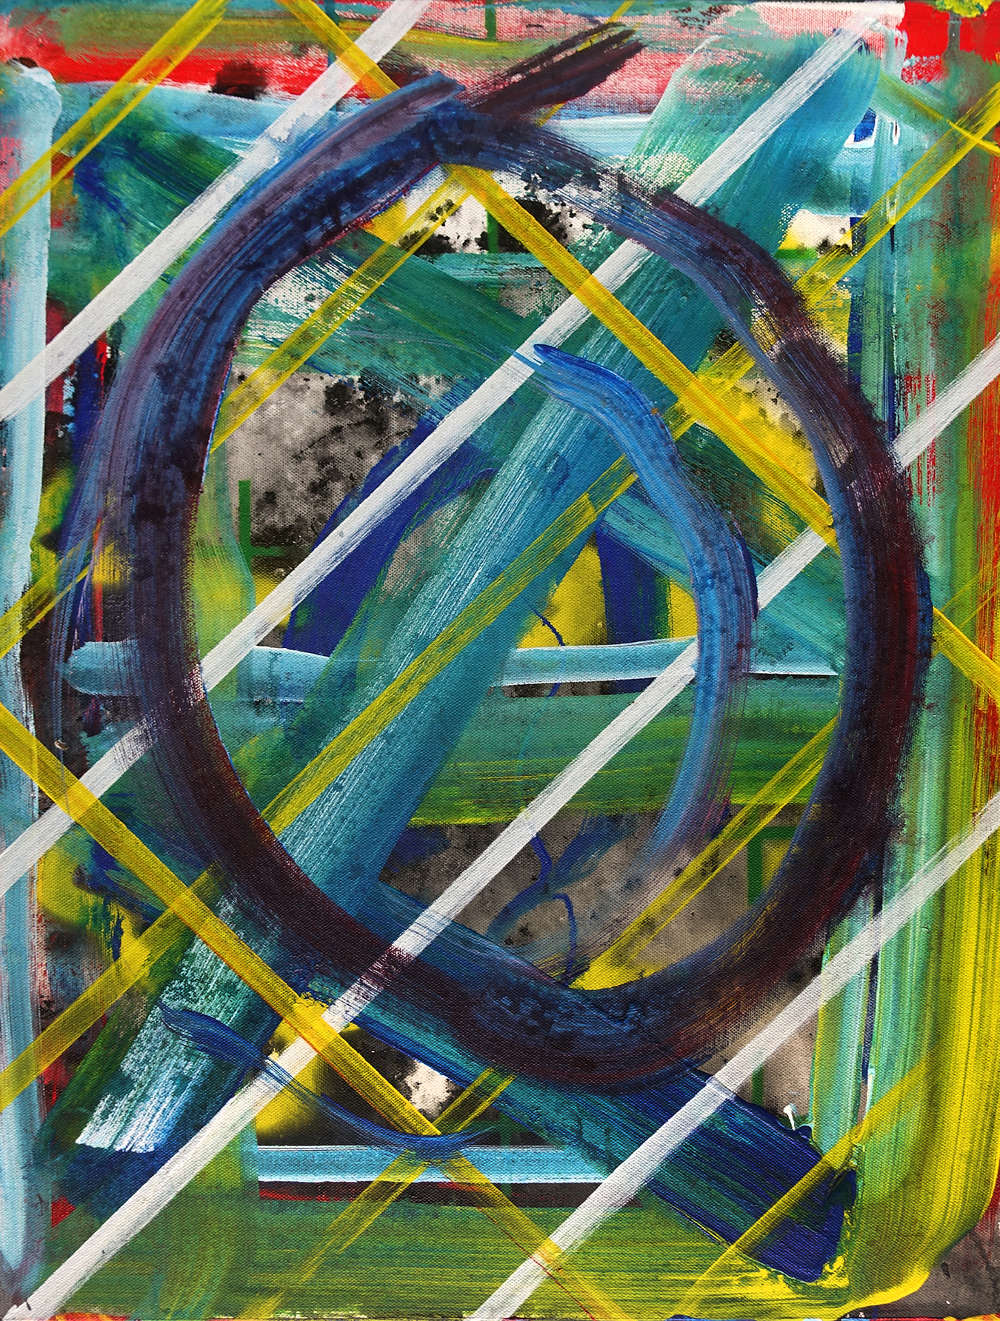 Ed Moses (1926-2018), Whirl, 2017. Acrylic on canvas 24 x 18 inches